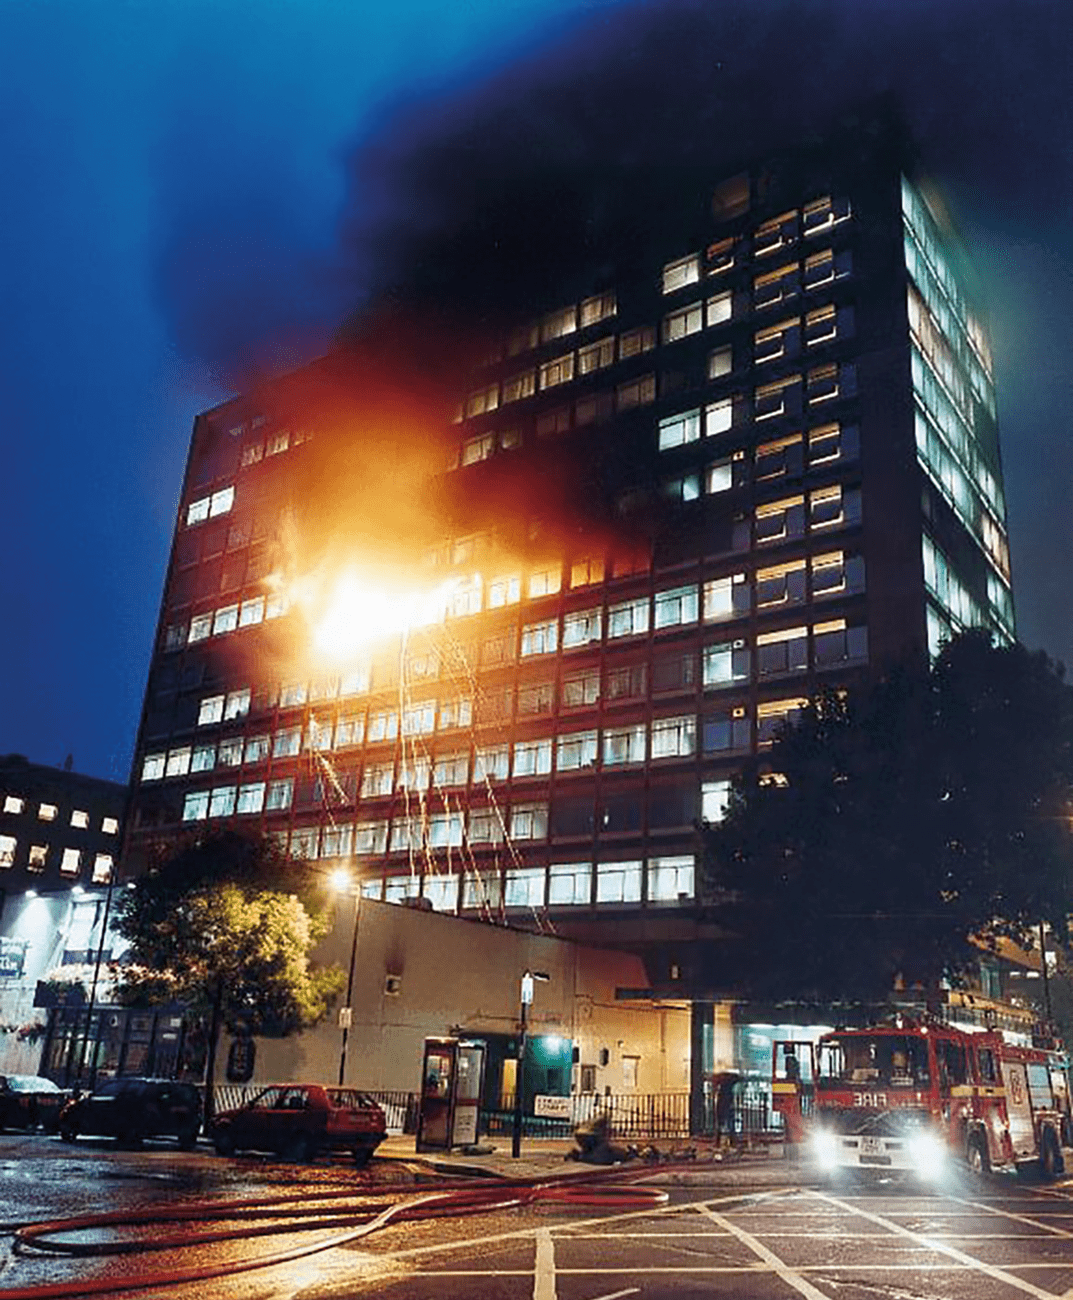 A dramatic nightime view of a serious fire in tower accommodation.